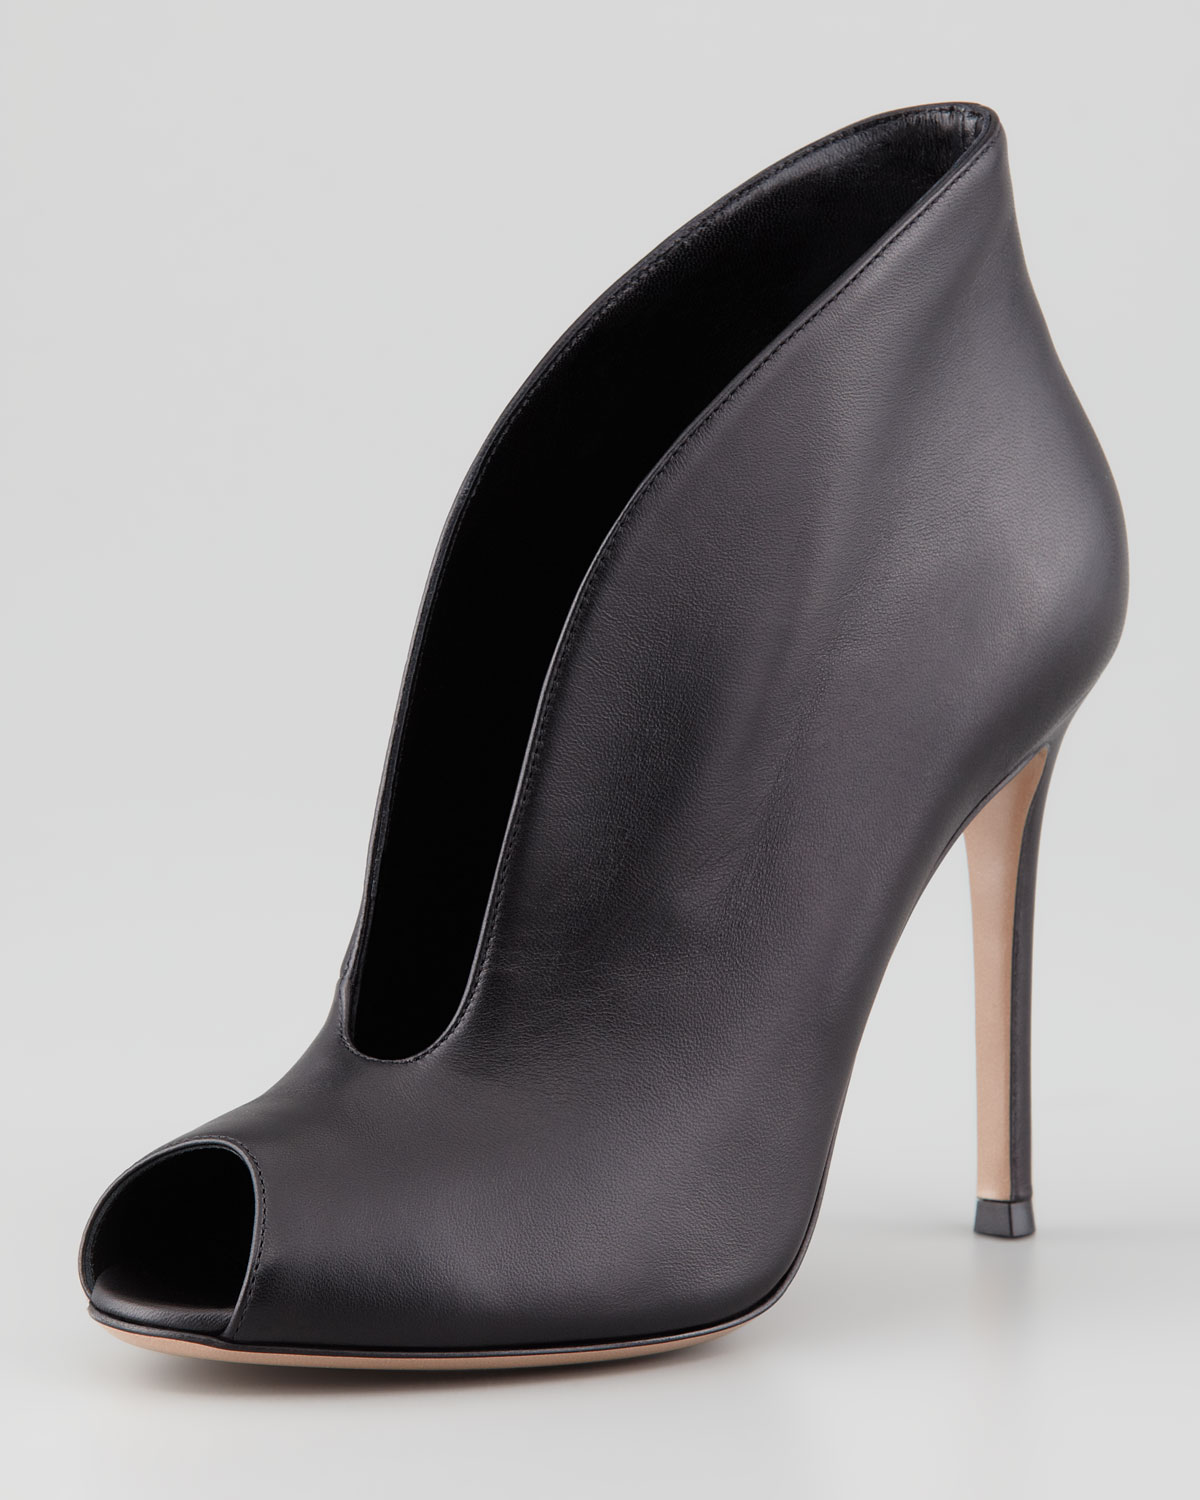 gianvito rossi womens flared splitfront peeptoe ankle boot black in black lyst. Black Bedroom Furniture Sets. Home Design Ideas